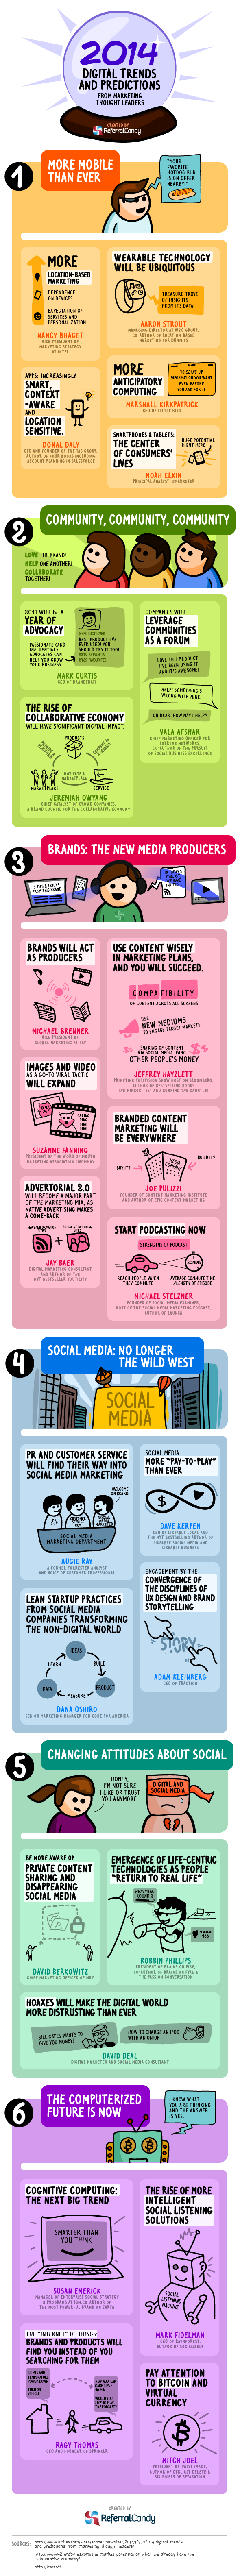 Digital-Trends-of-2014